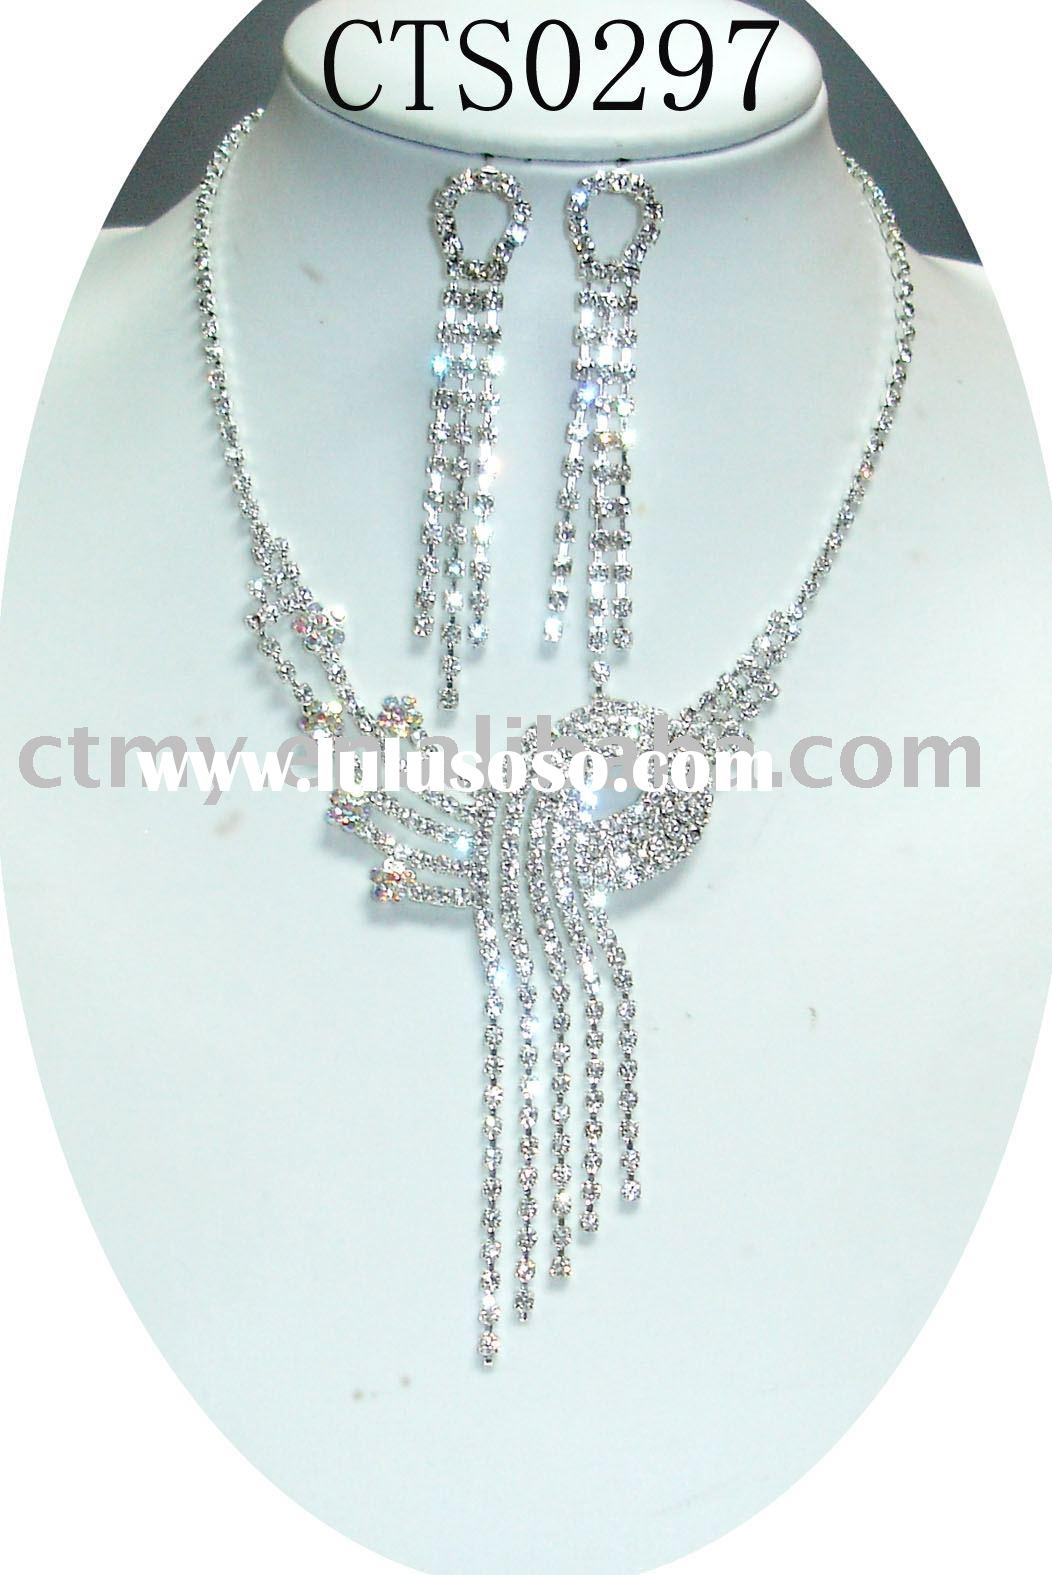 CTS0297 wedding or bridal or CZ diamond necklace and earring fashion party jewelry set costume or im